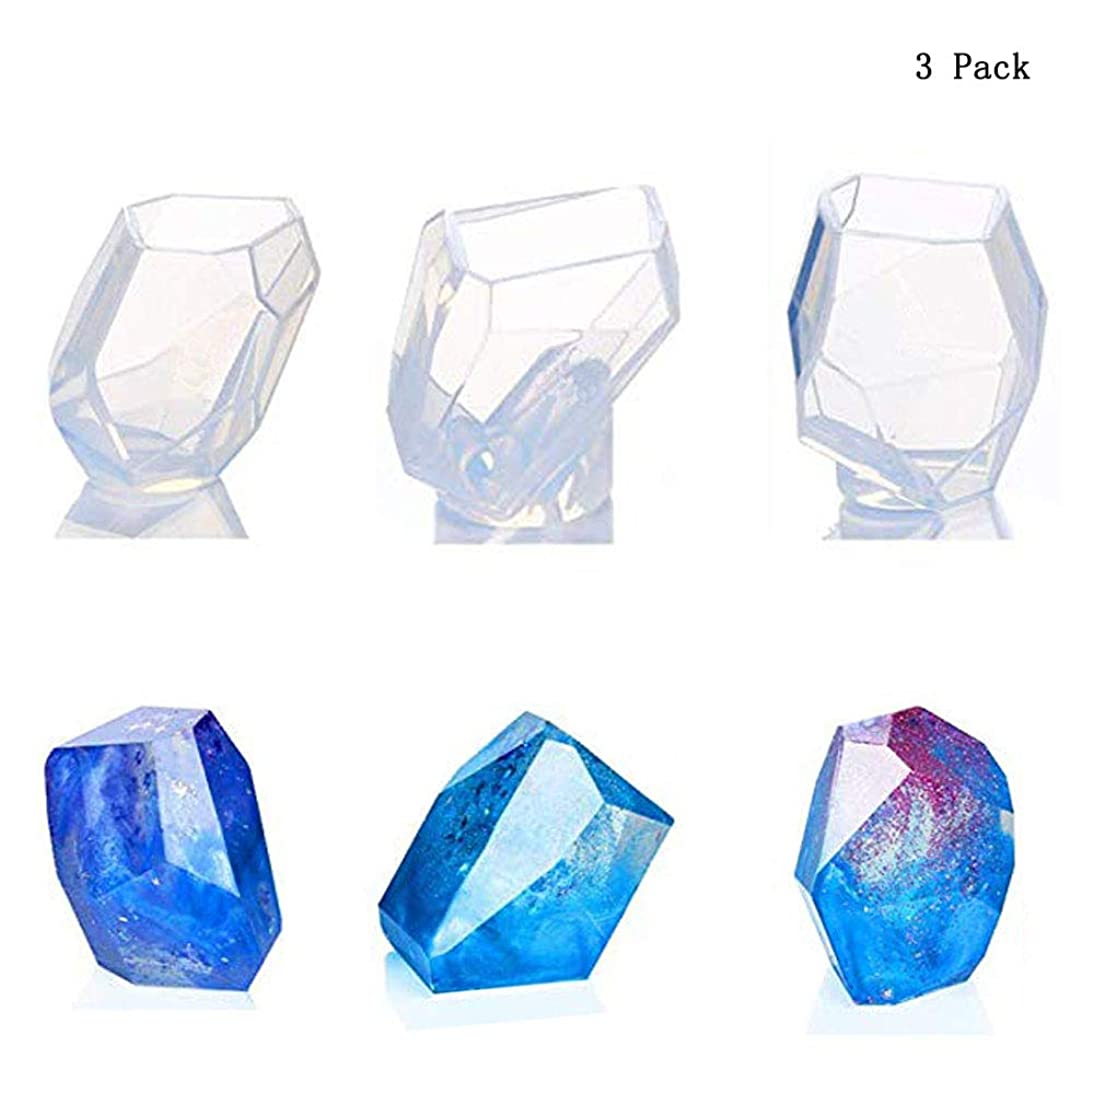 3 Pack Multi-Faceted Silicone Transparent Round Mold, Oneup DIY Resin Diamond Jewelry Casting Molds Making Tool for Polymer Clay, Crafting, Resin Epoxy, Jewelry Making. yhch701495634134